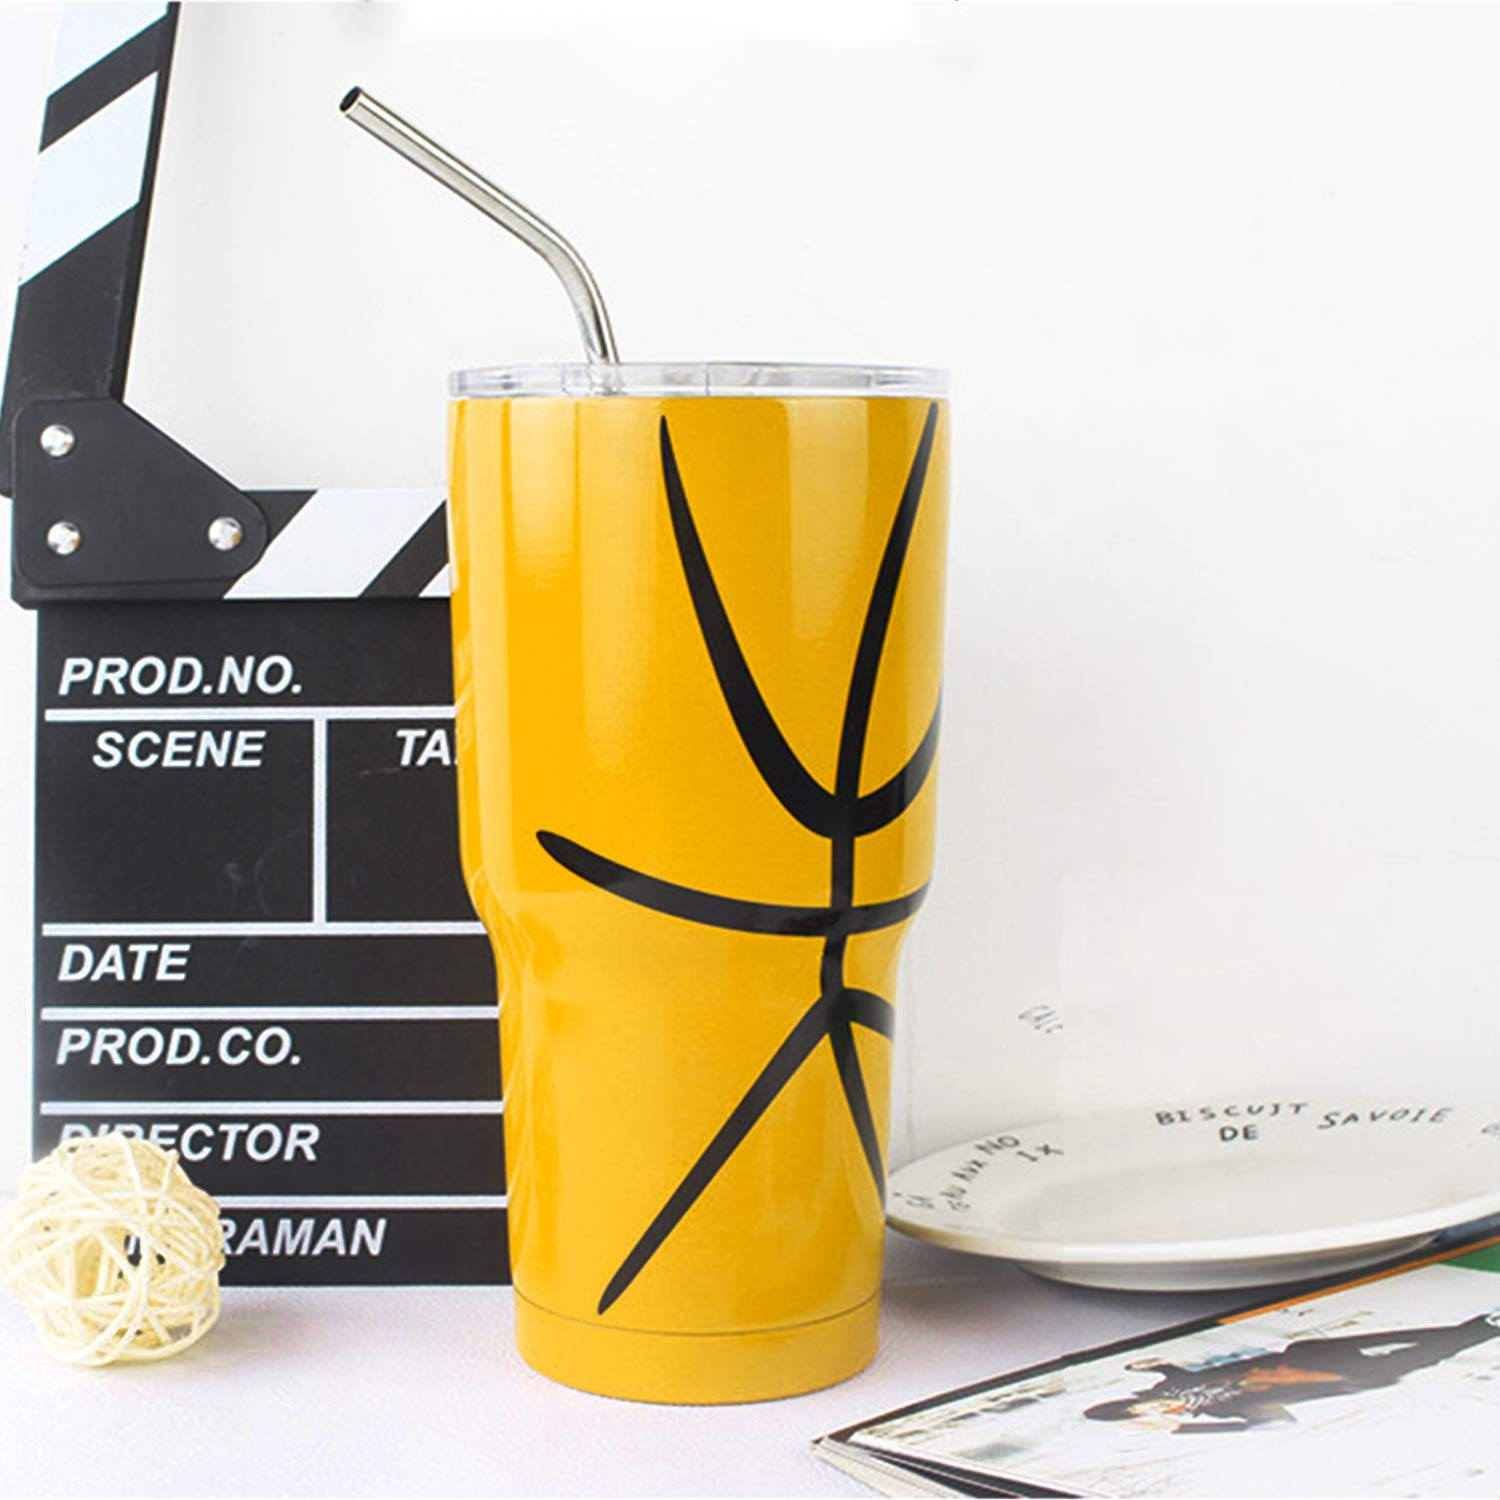 YIHONG Set of 8 Stainless Steel Metal Straws Ultra Long 10.5 Inch Reusable Straws For Tumblers Rumblers Cold Beverage (4 Straight|4 Bent|2 Brushes)